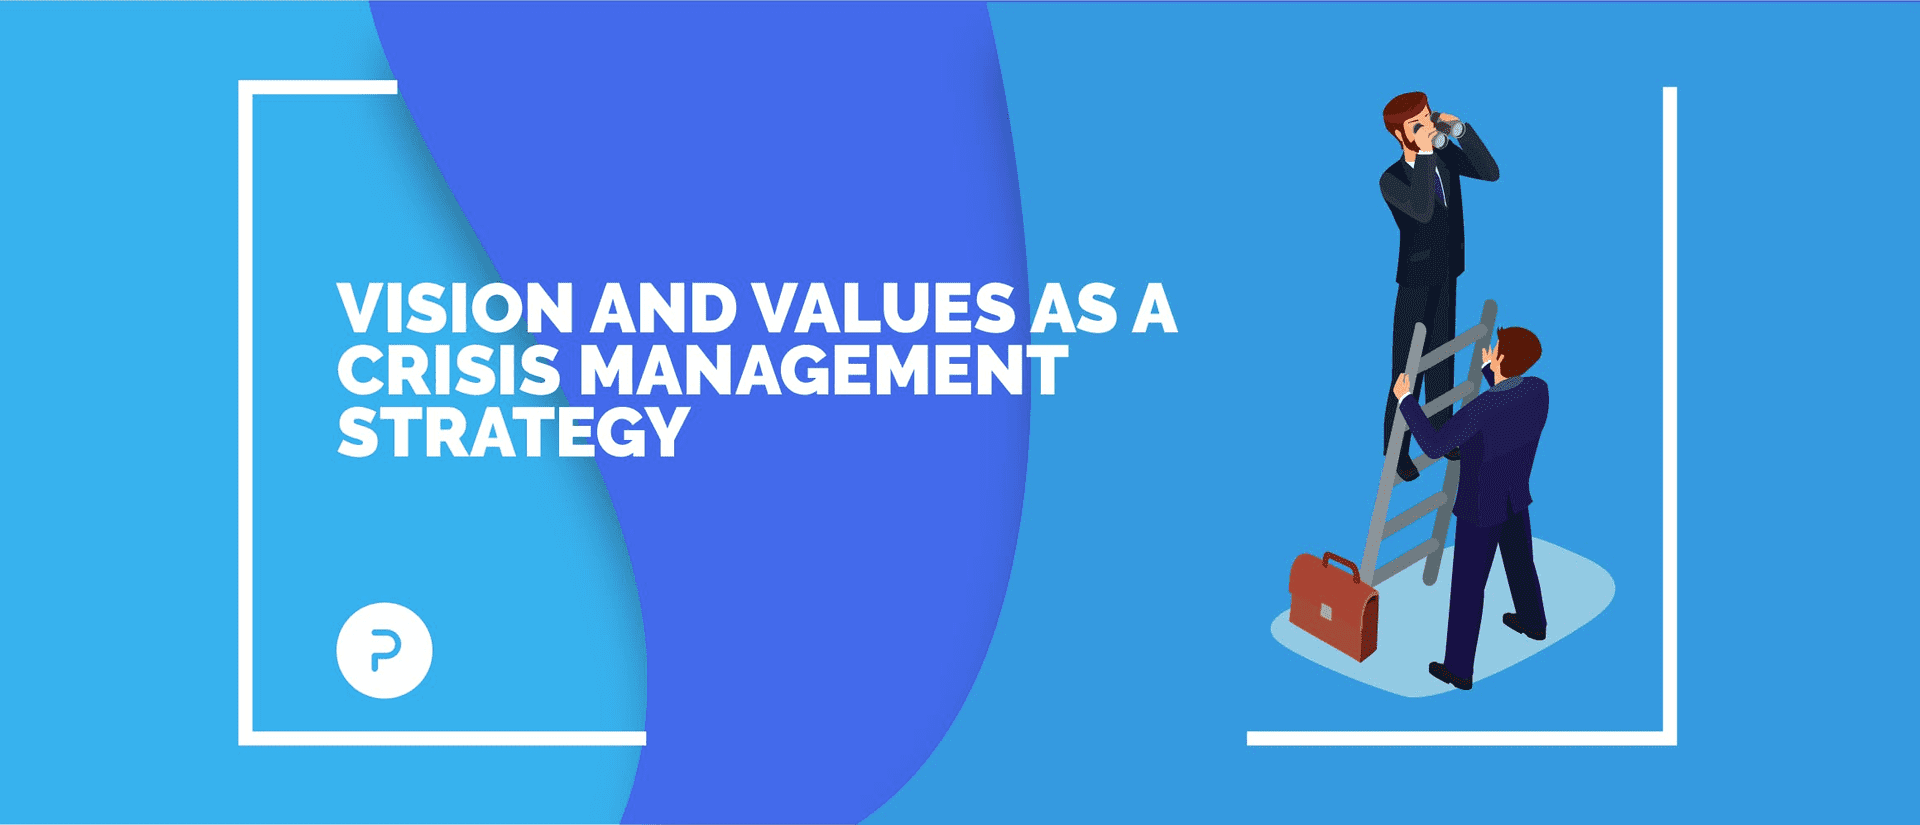 Vision and Values as a Crisis Management Strategy